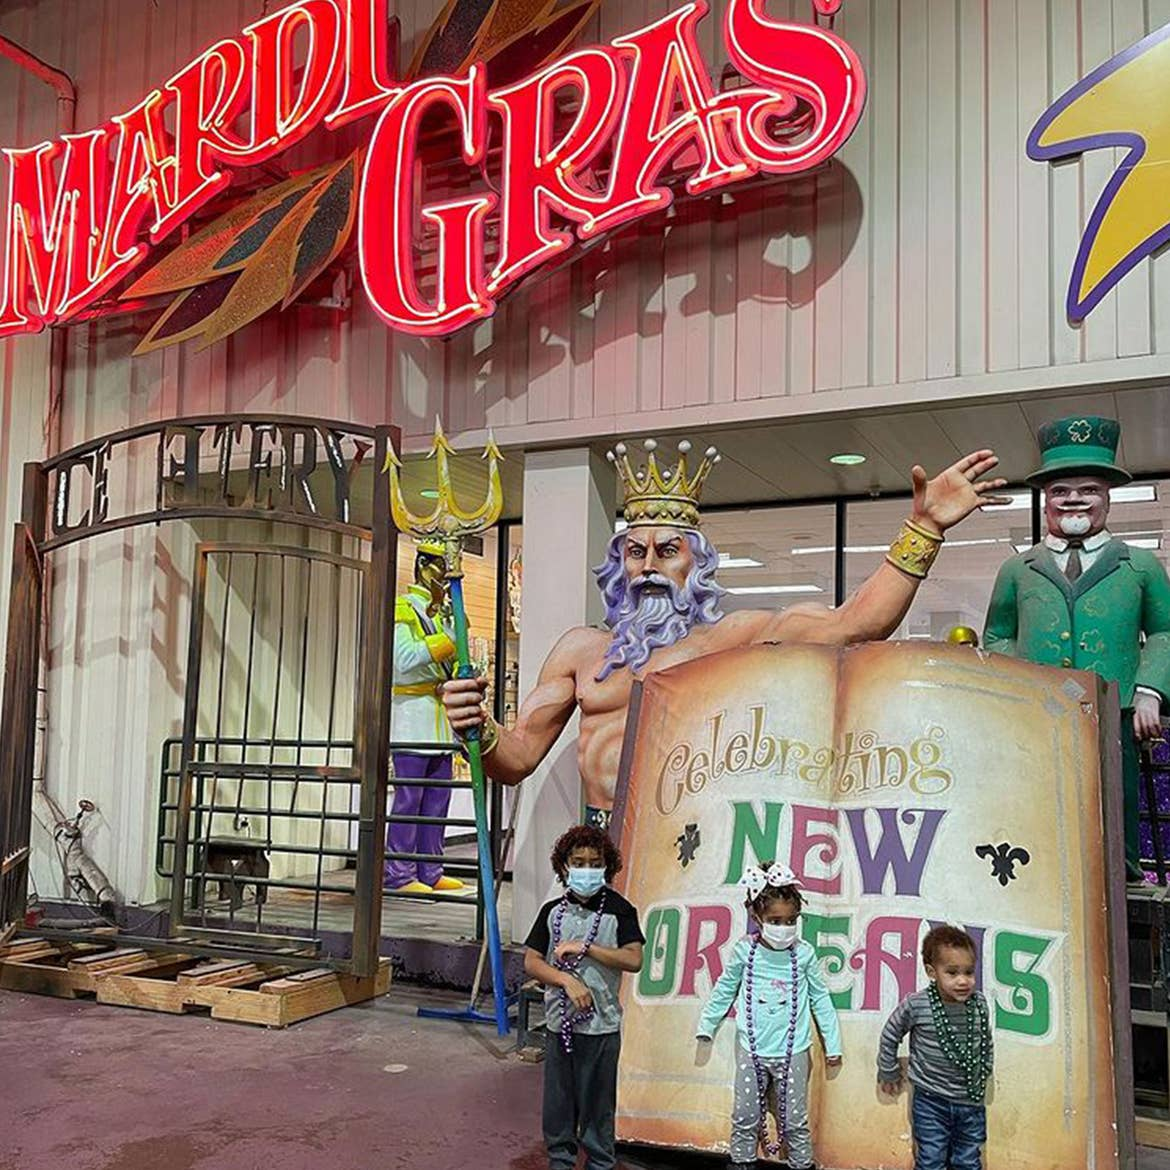 Featured Contributor, Sally Butan of @butanclan's daughter, Alissa (middle), and sons, Alex (left) and Alston (right) pose next to a giant book prop that reads, 'Celebrating New Orleans' outside of  Mardi Gras World in New Orleans, Louisiana.